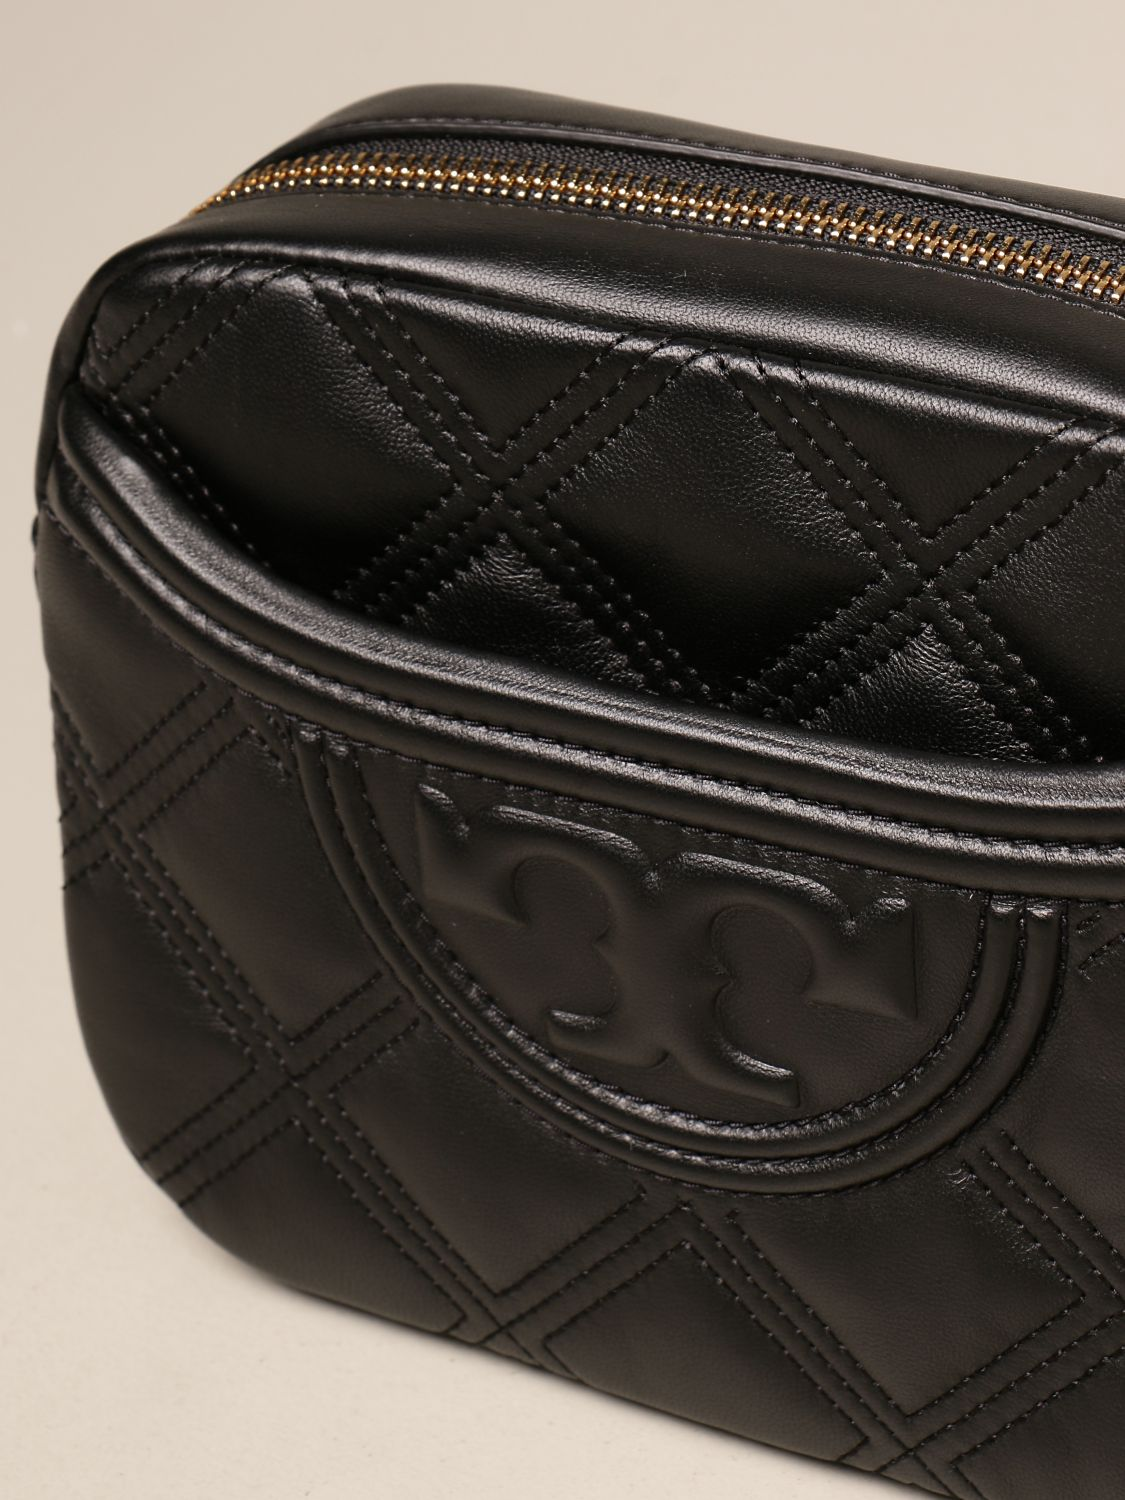 Crossbody bags Tory Burch: Feming Tory Burch bag in quilted leather black 3